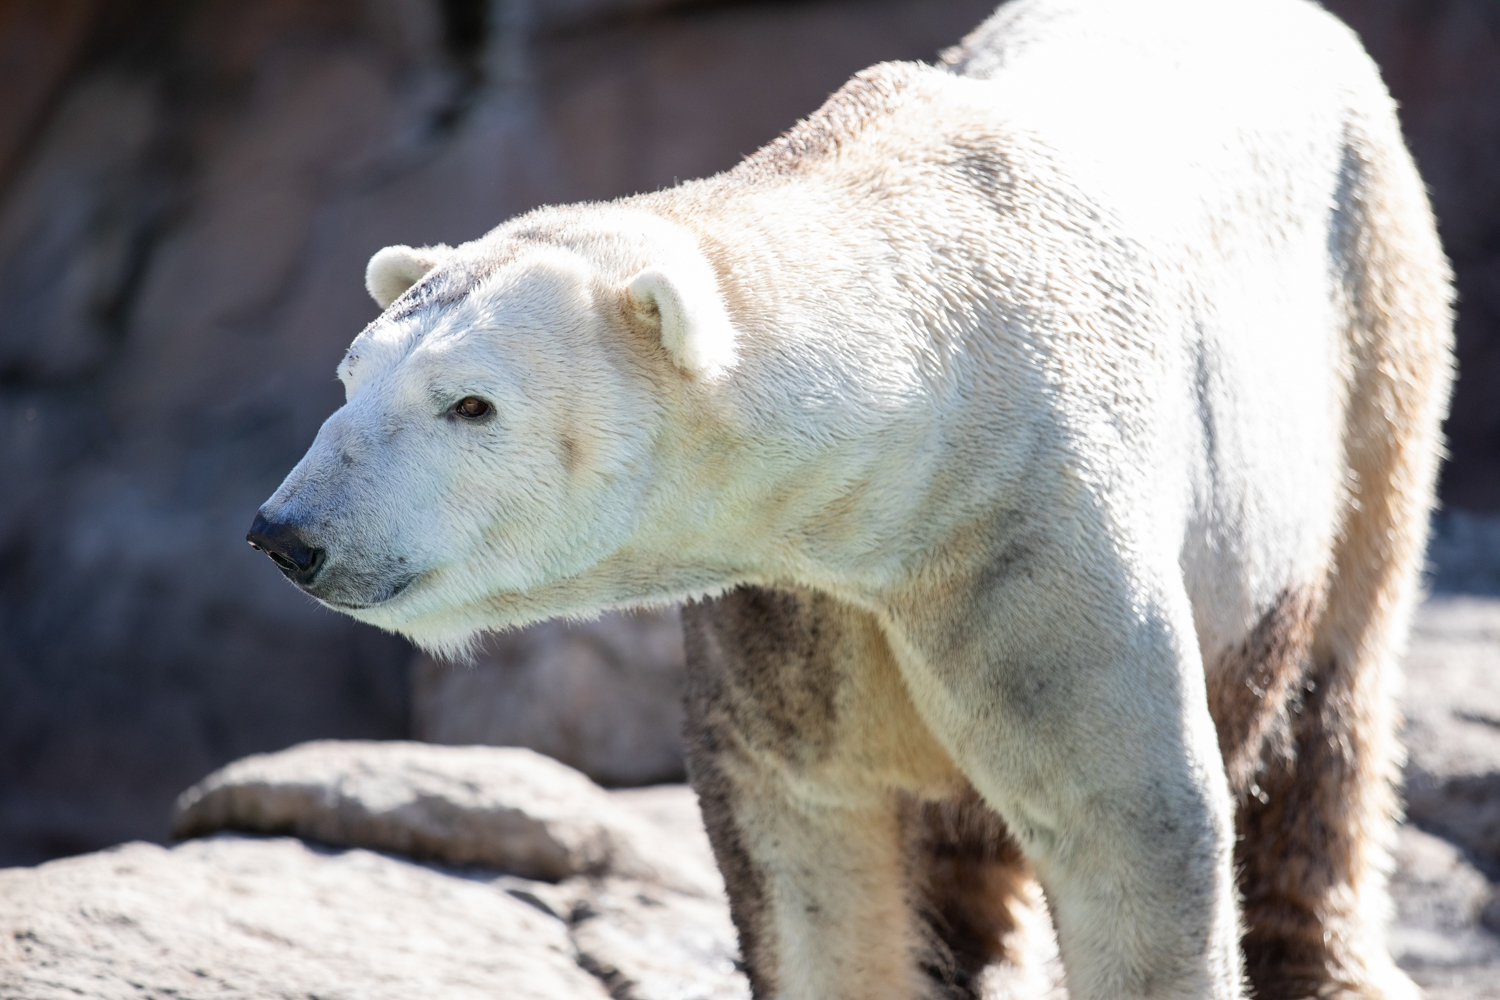 Payton, male polar bear at North Carolina Zoo. Photo credit North Carolina Zoo.